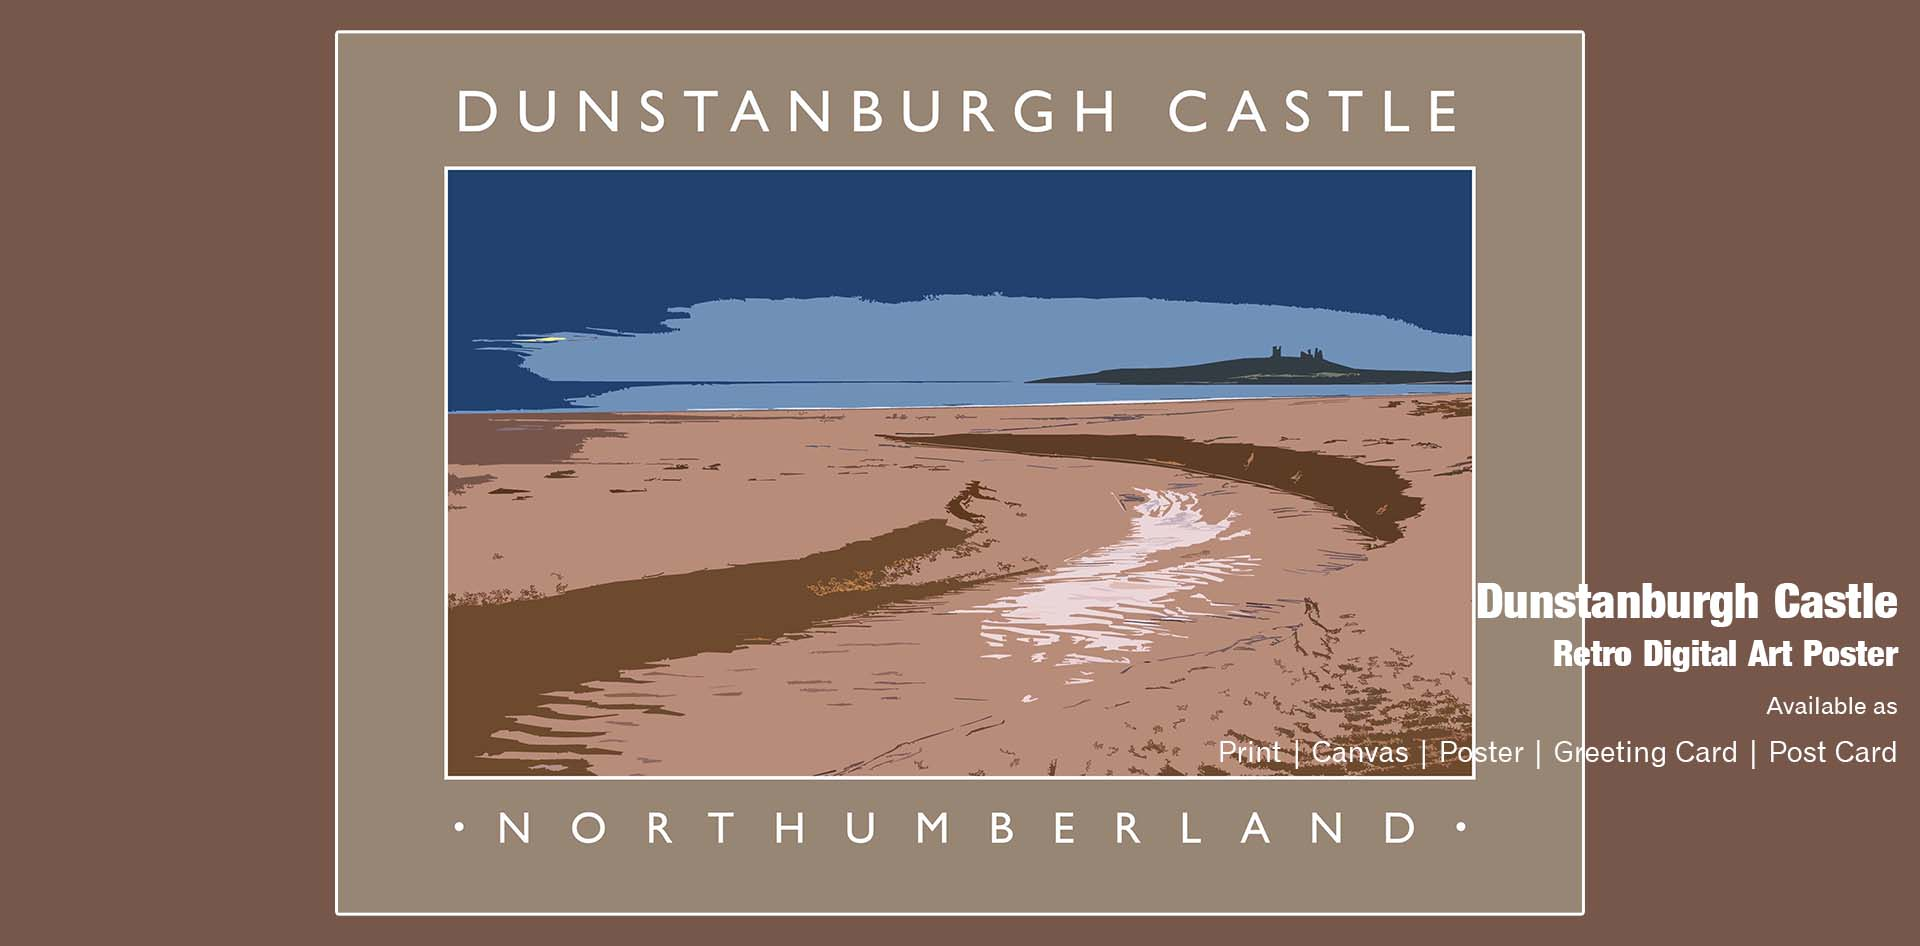 Dunstanburgh Castle Ponteland Print & Publishing